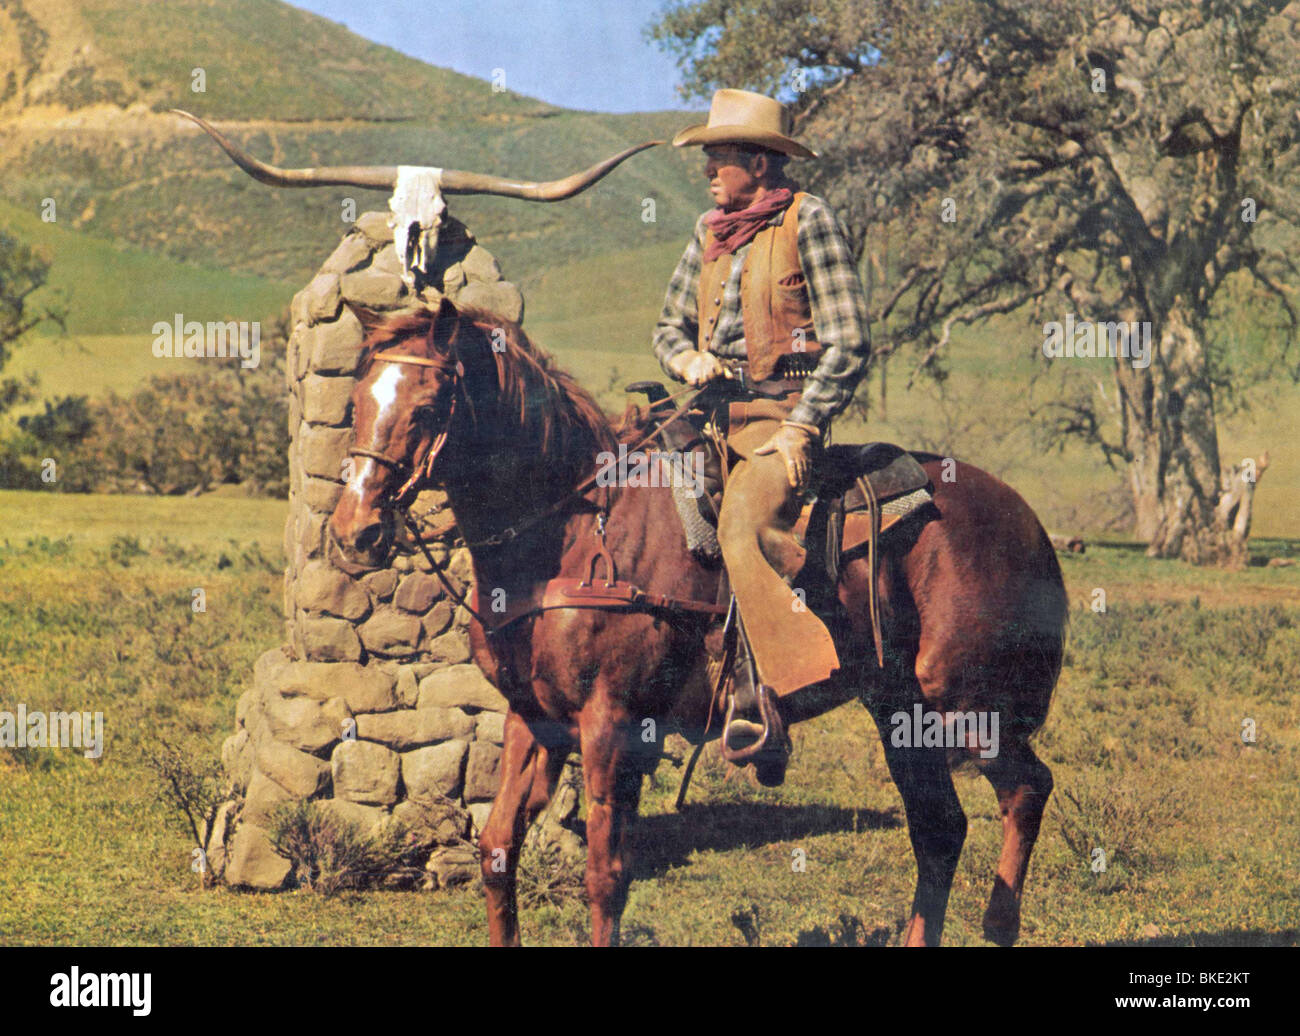 THE RARE BREED (1966) JAMES STEWART RABR 002FOH - Stock Image